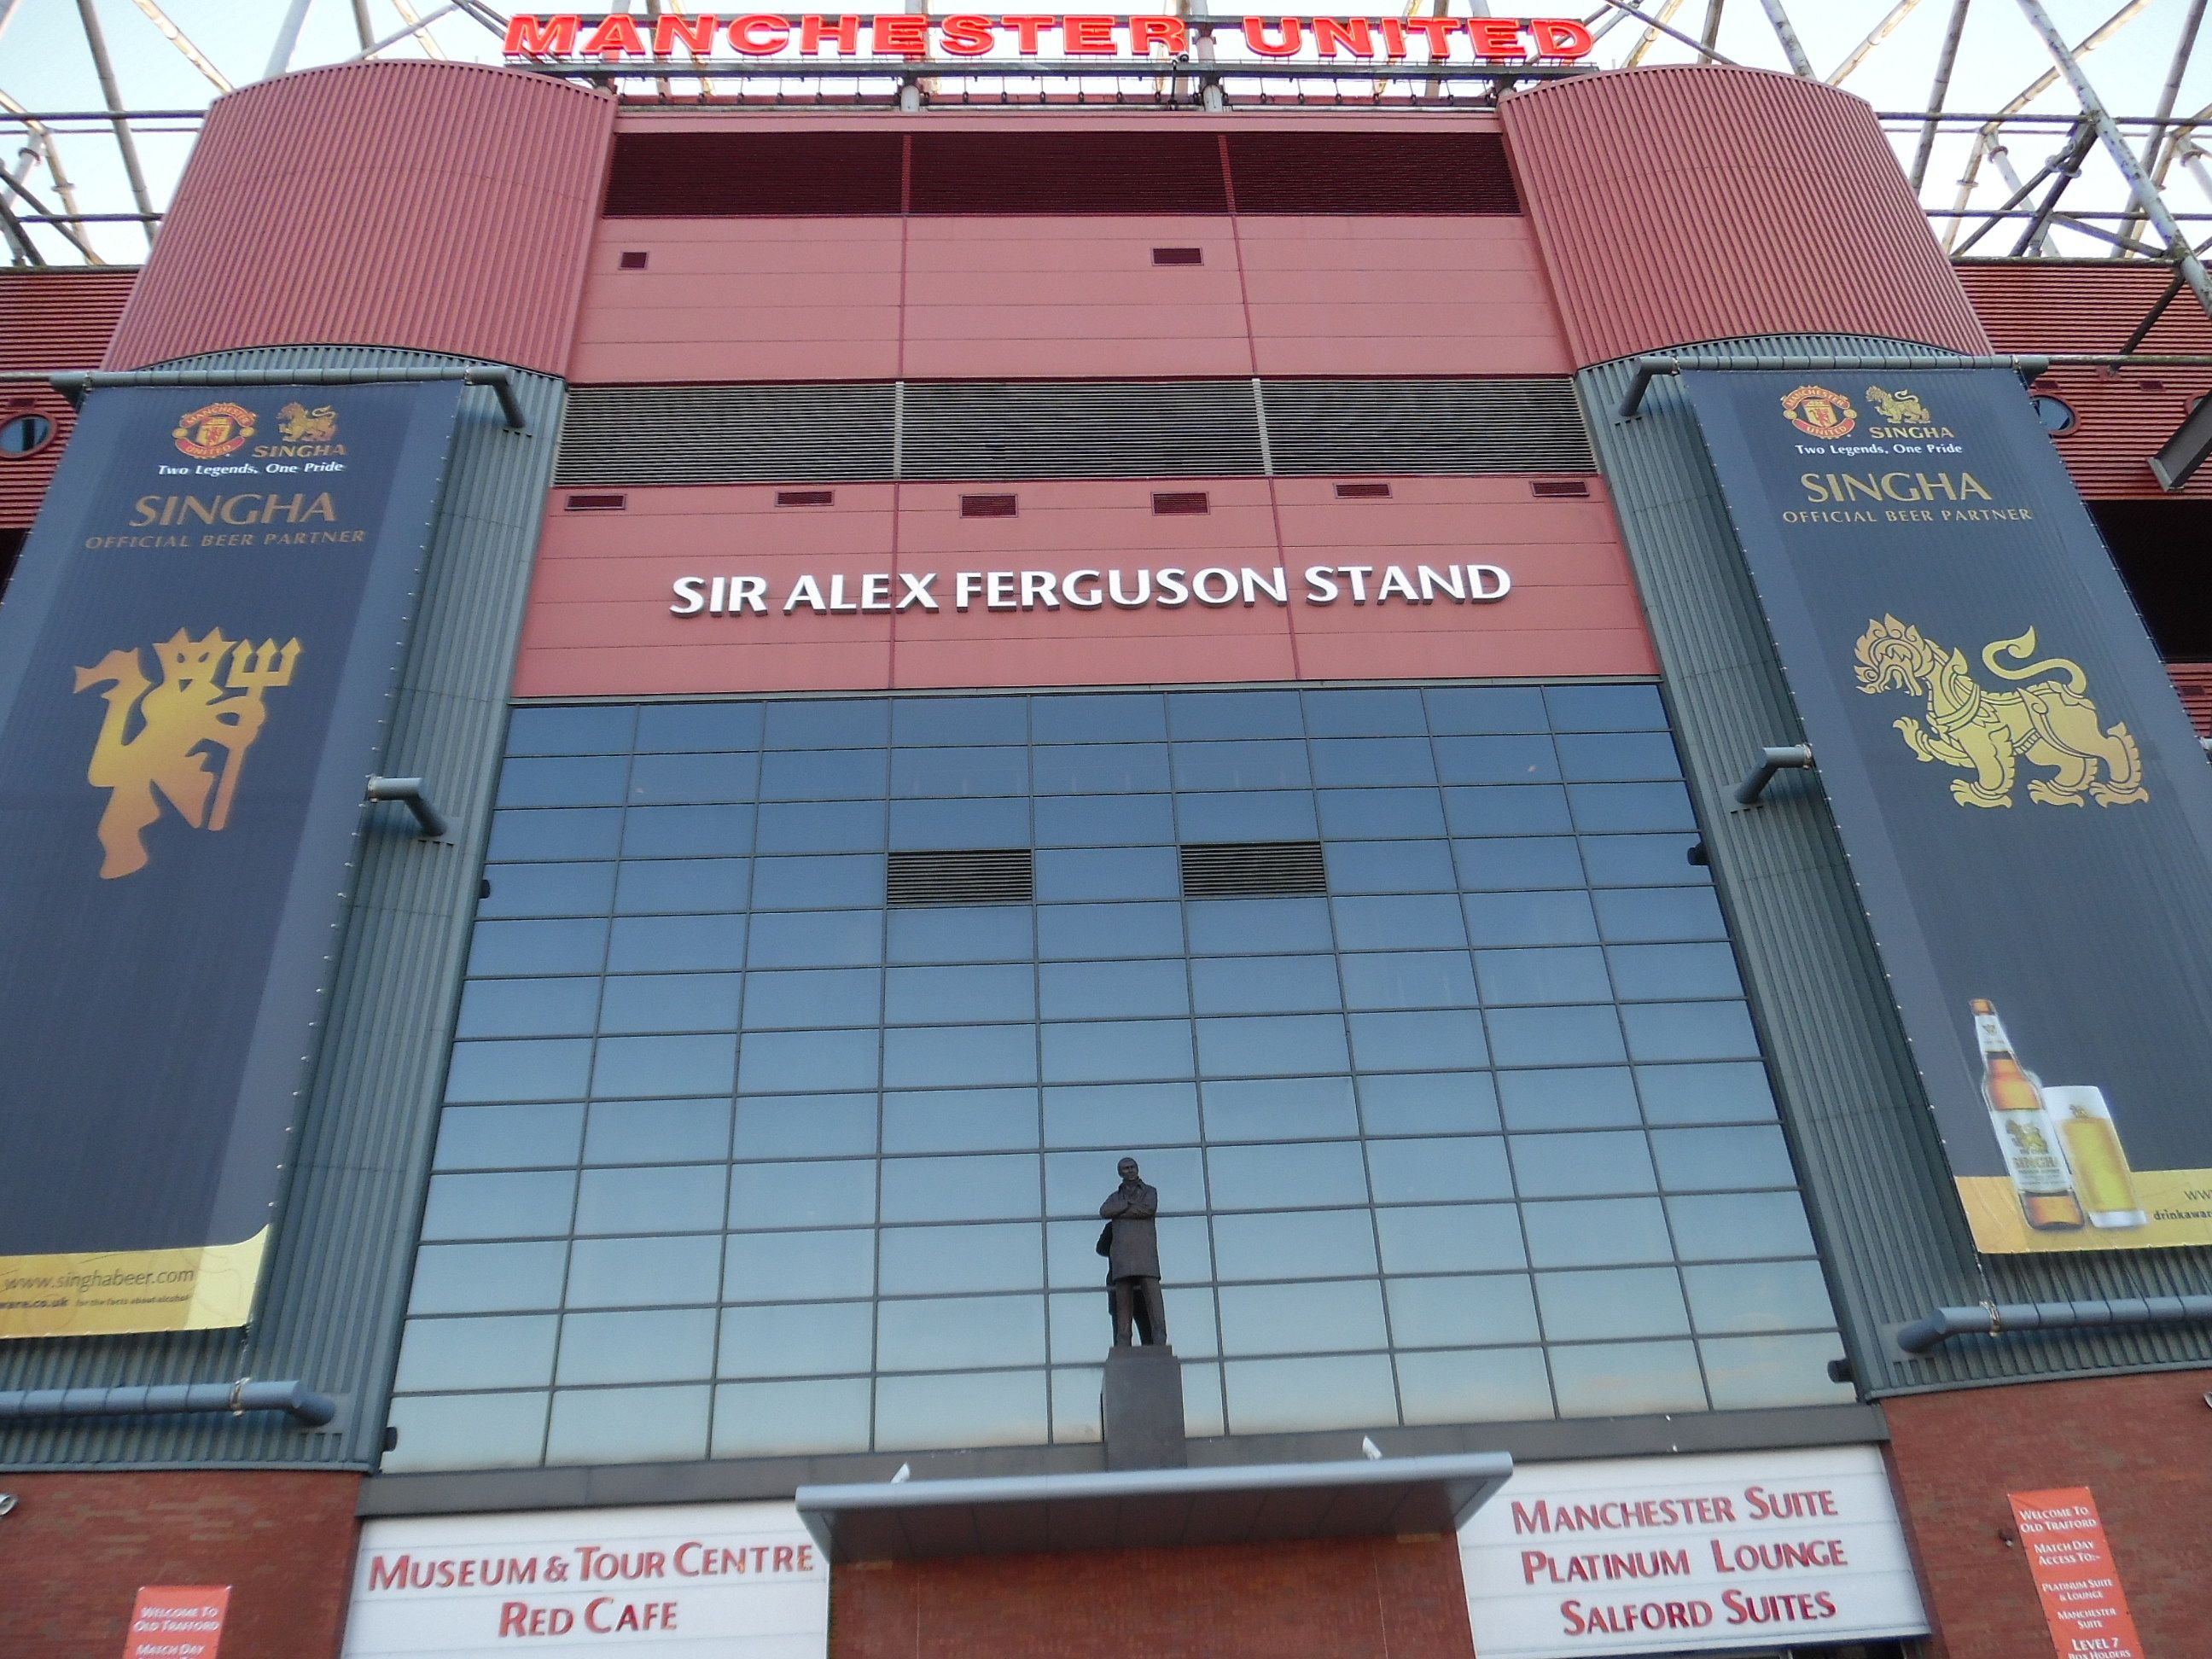 The Sir Alex Ferguson Stand of ManUnited's Old Trafford : you have to learn to be respectful. Even towards your worst / best enemy...